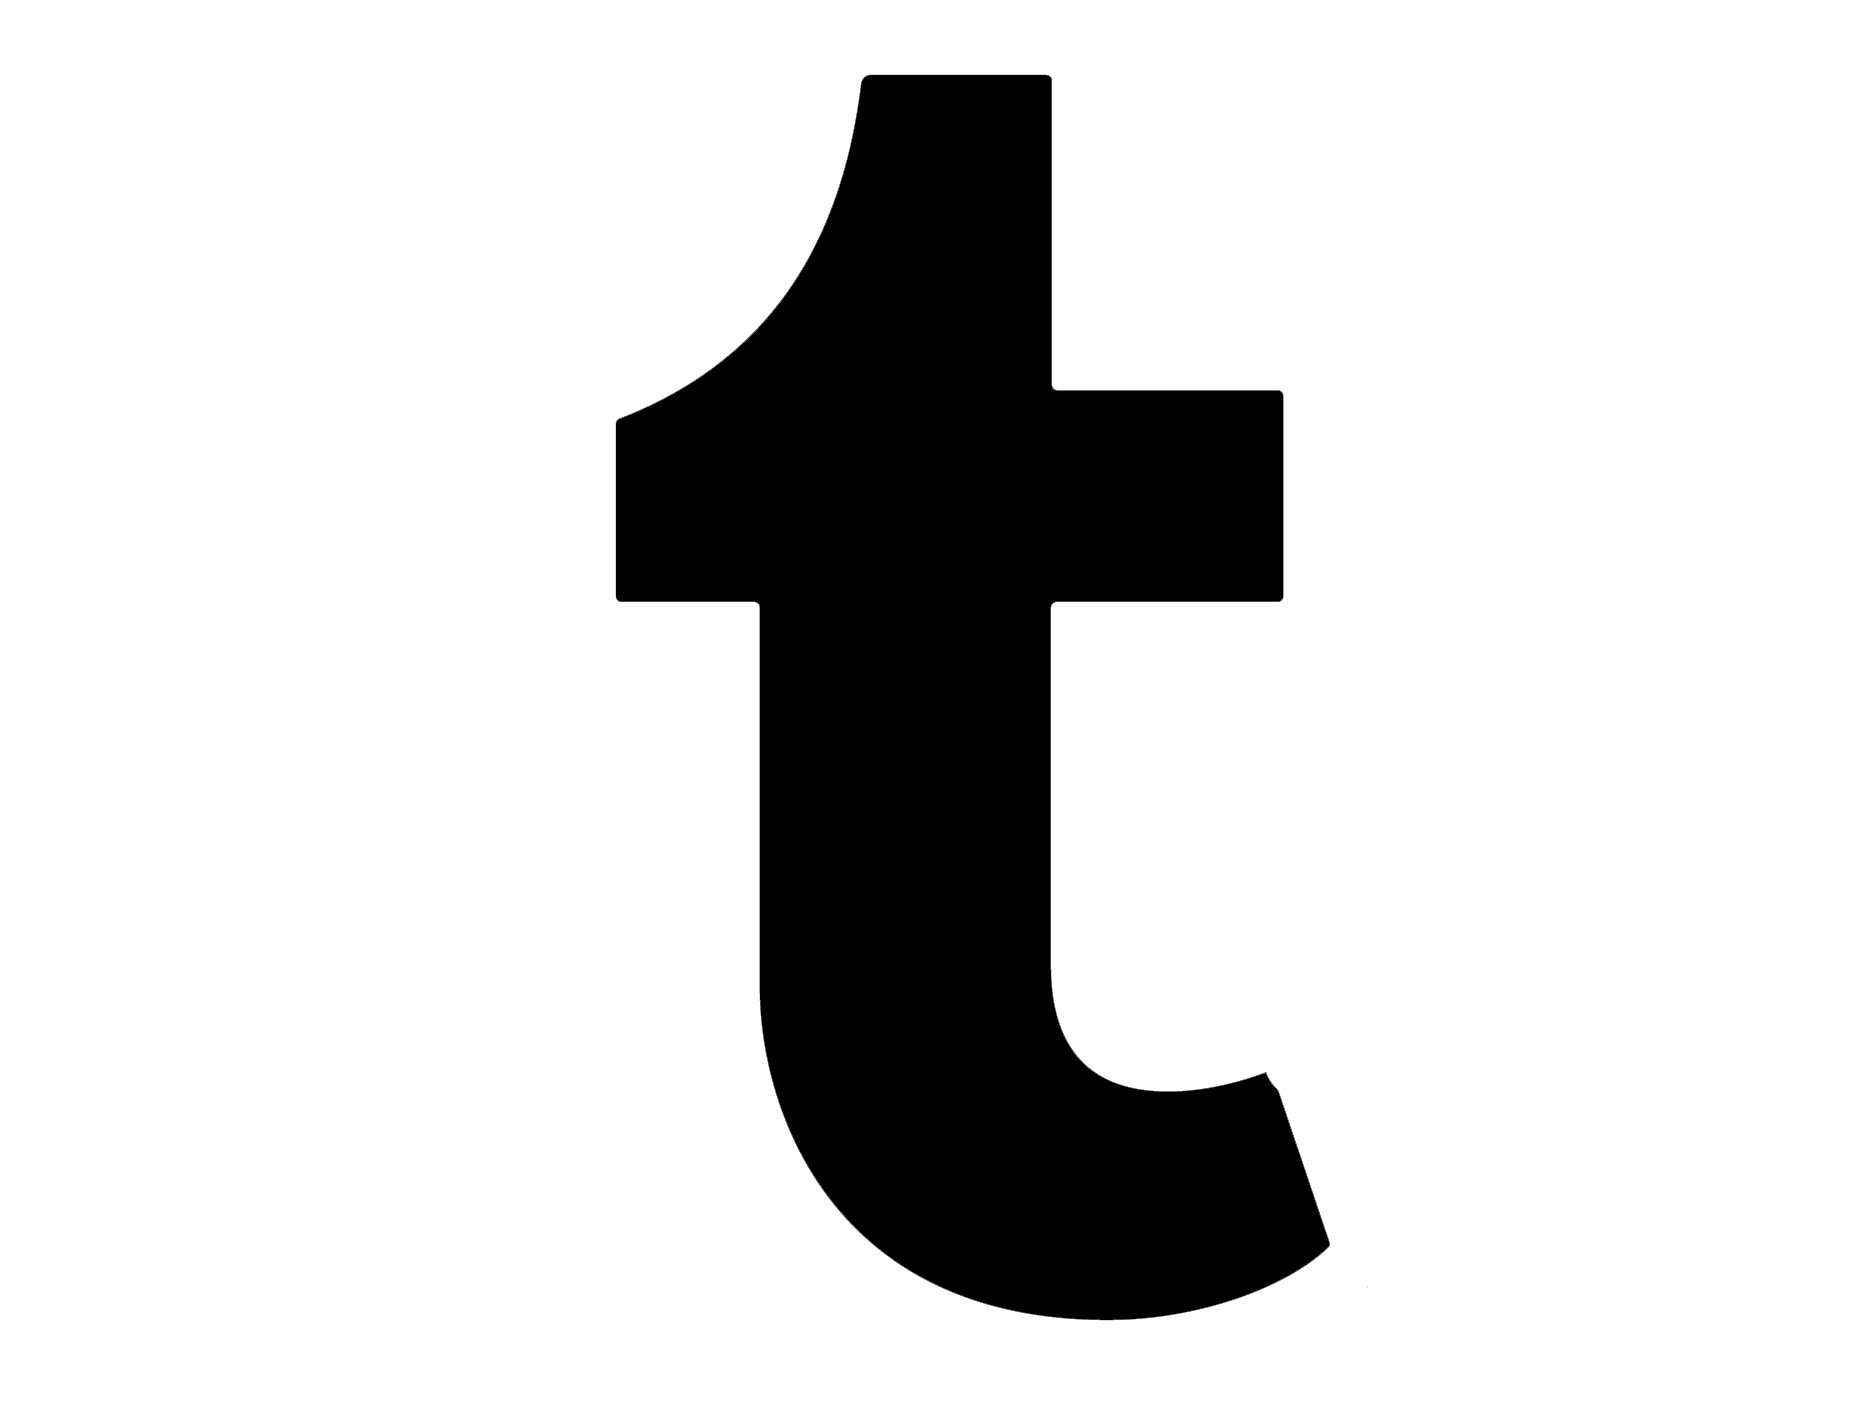 Tumblr Logo, Tumblr Symbol, Meaning, History and Evolution - photo#12